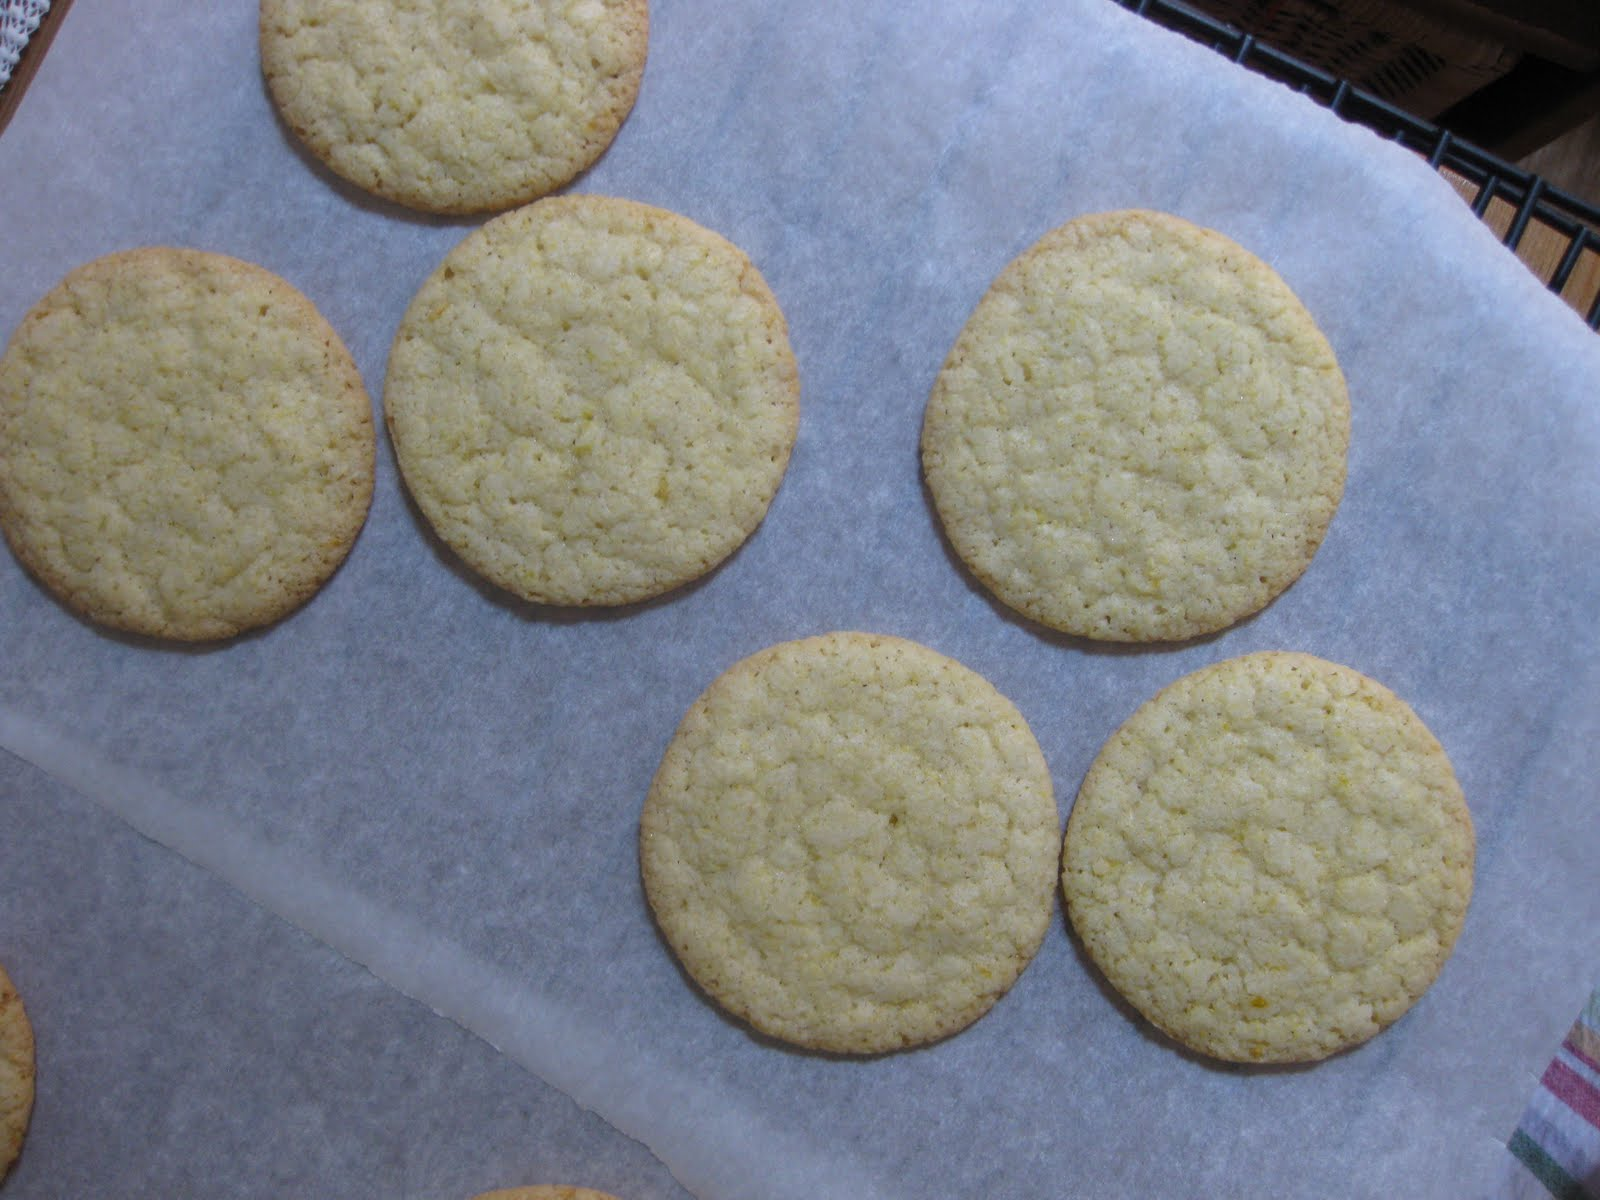 Sunday Treats: Lemon Cornmeal Cookies